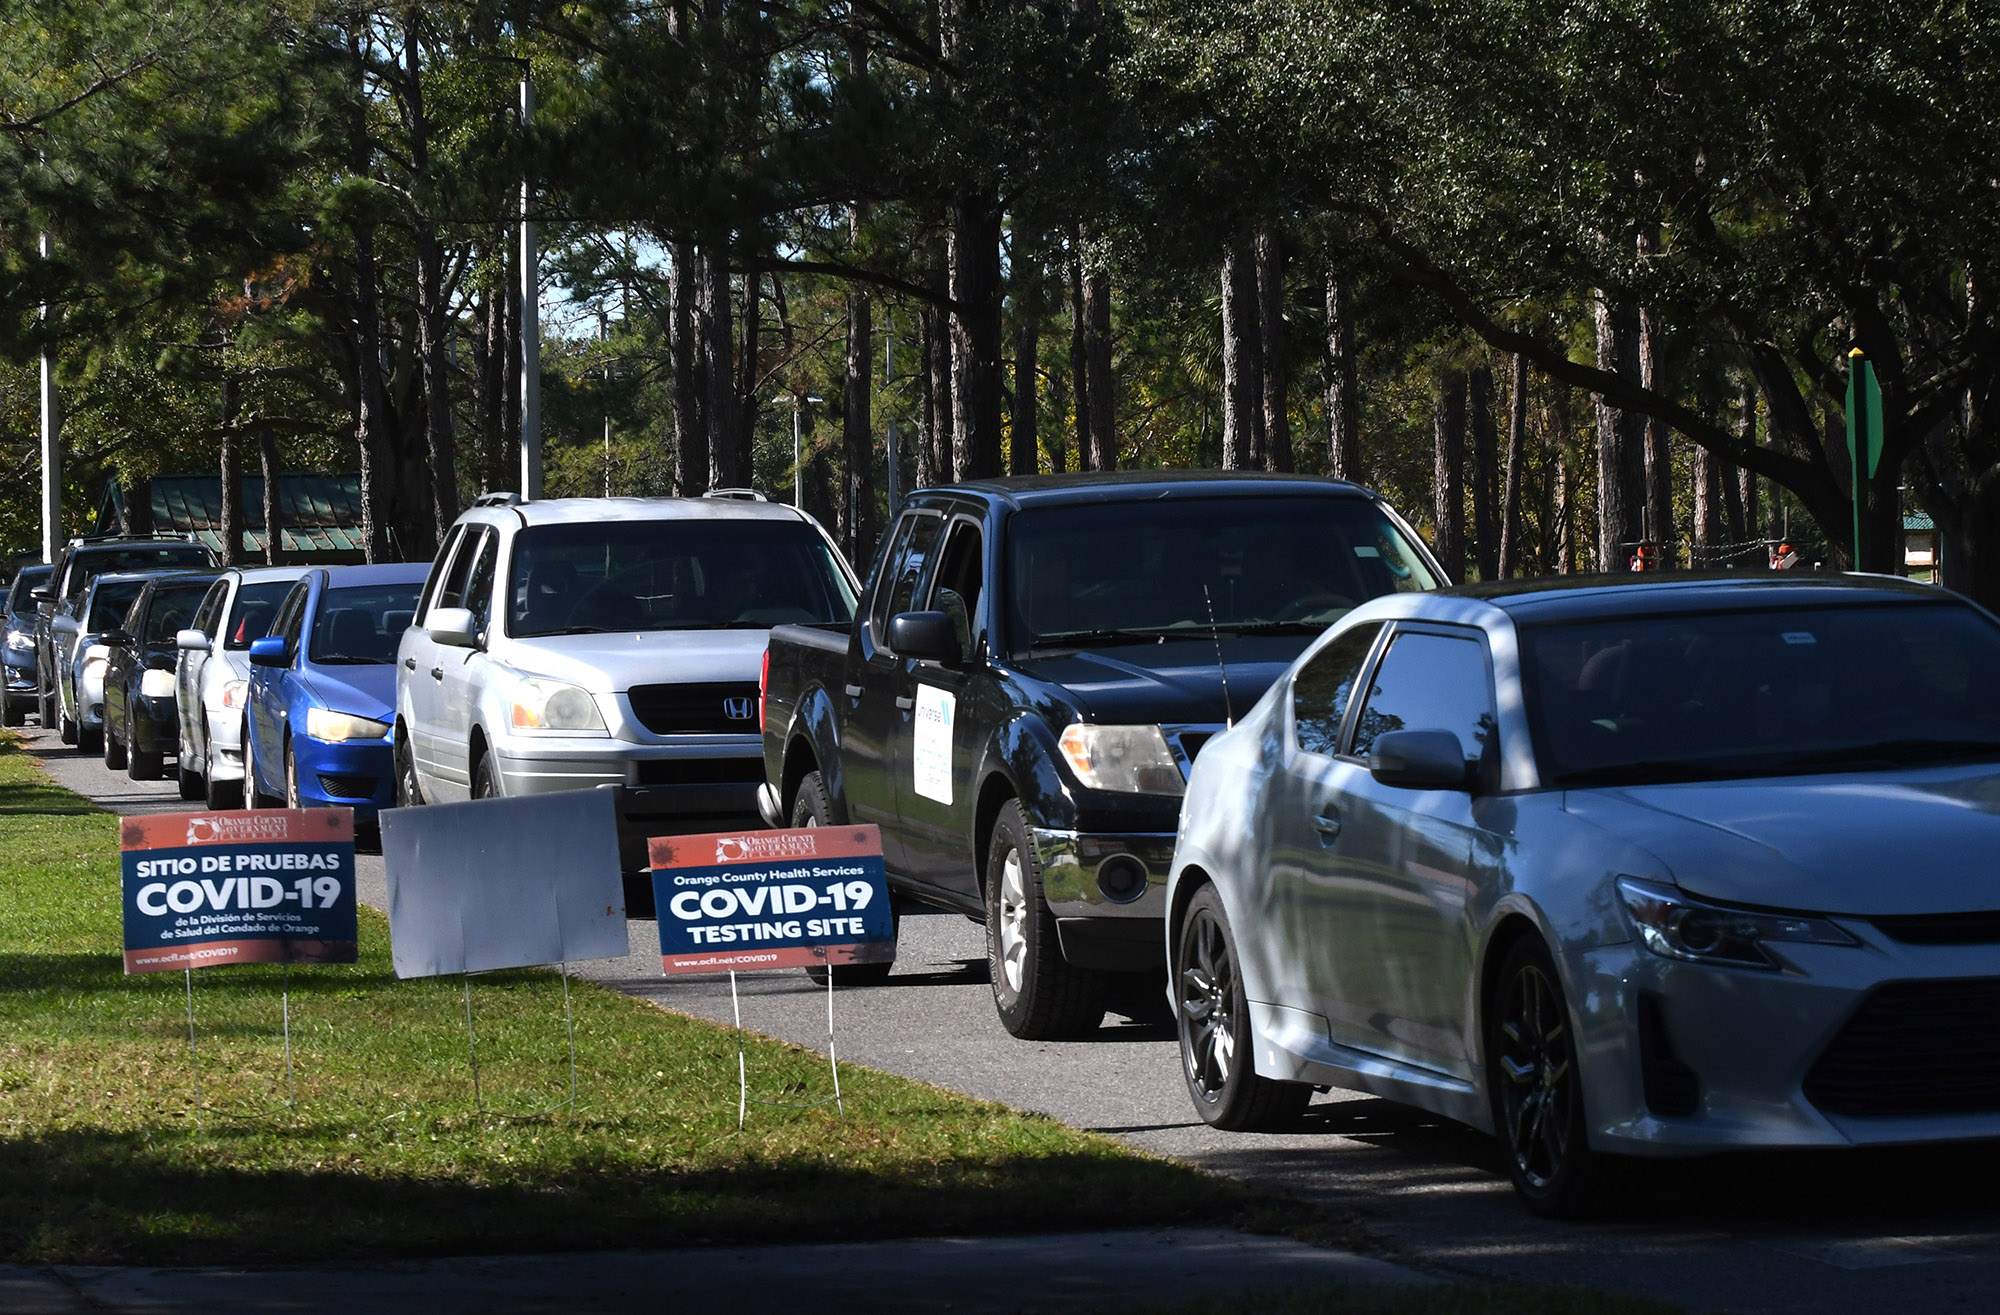 People are seen lined up in their cars at a COVID-19 rapid testing site at Barnett Park in Orlando, Florida on November 23.